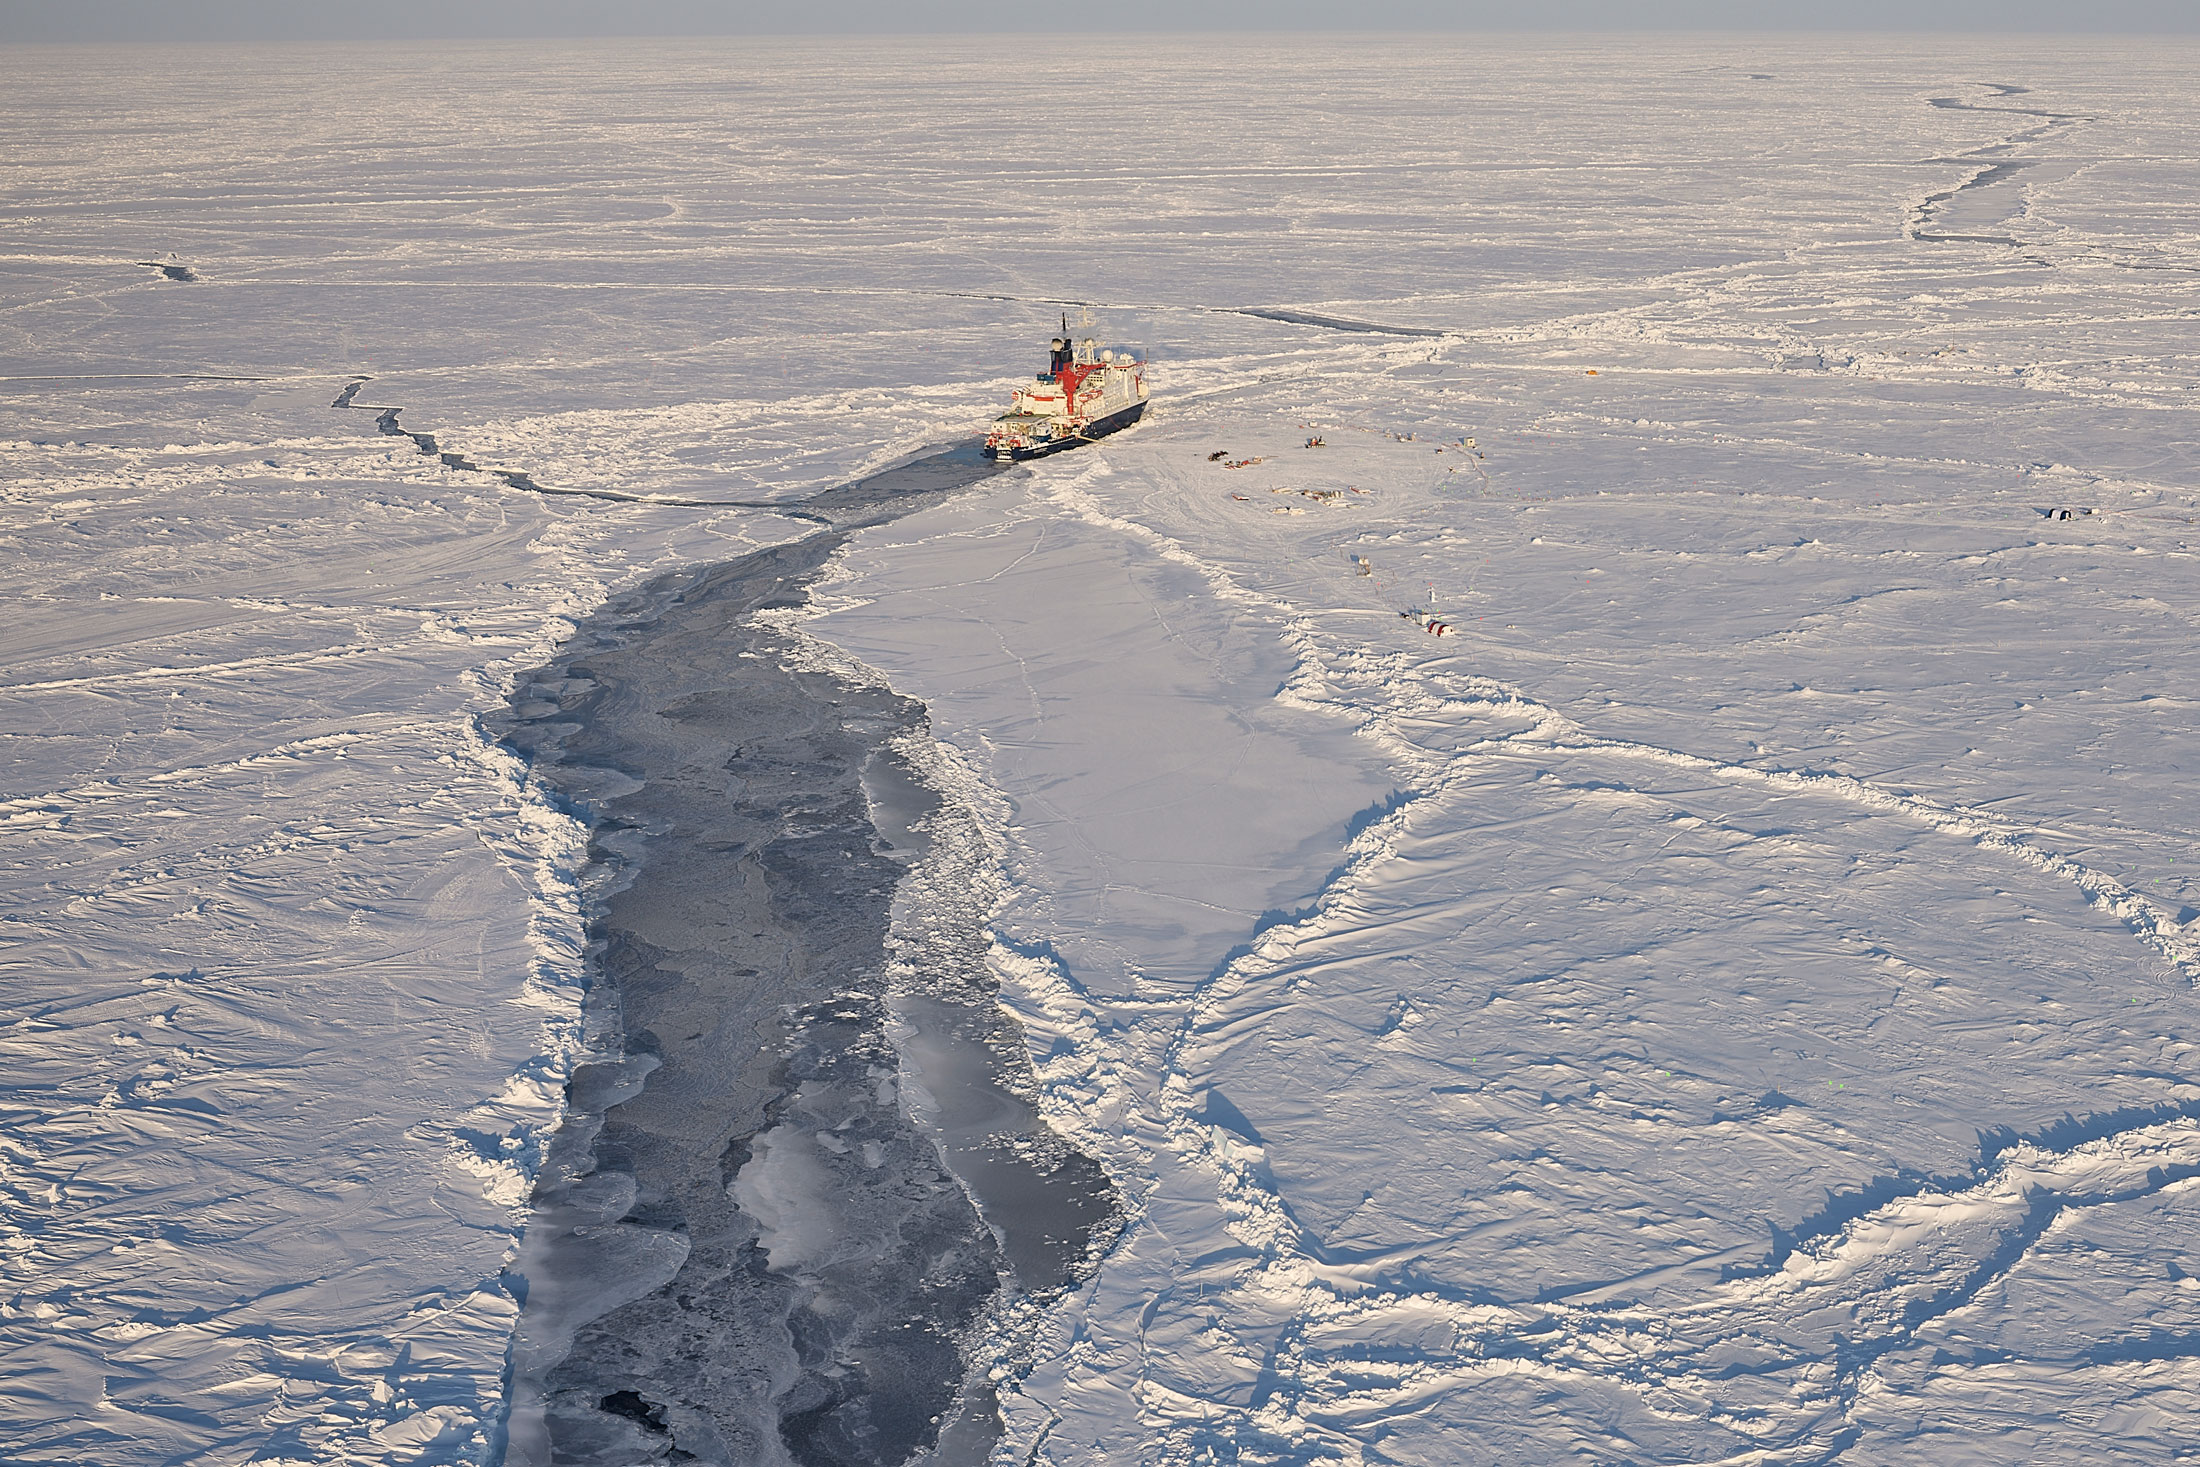 The Polarstern arctic research vessel in April 2020.